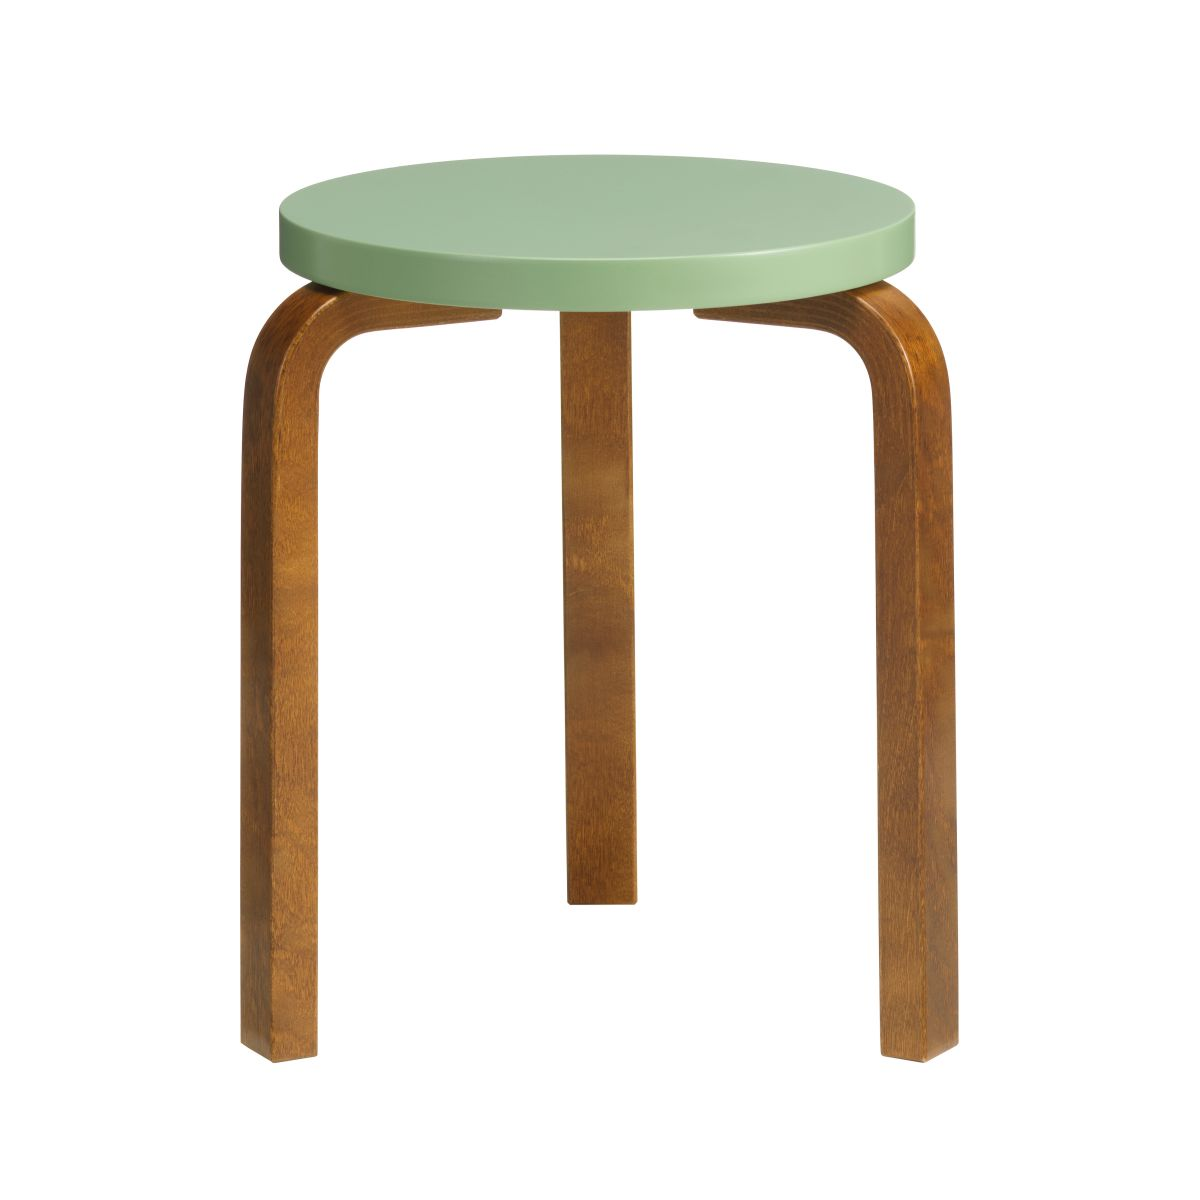 Stool_60_Walnut_Stain_Pale_Green_Lacquer_F-2243644